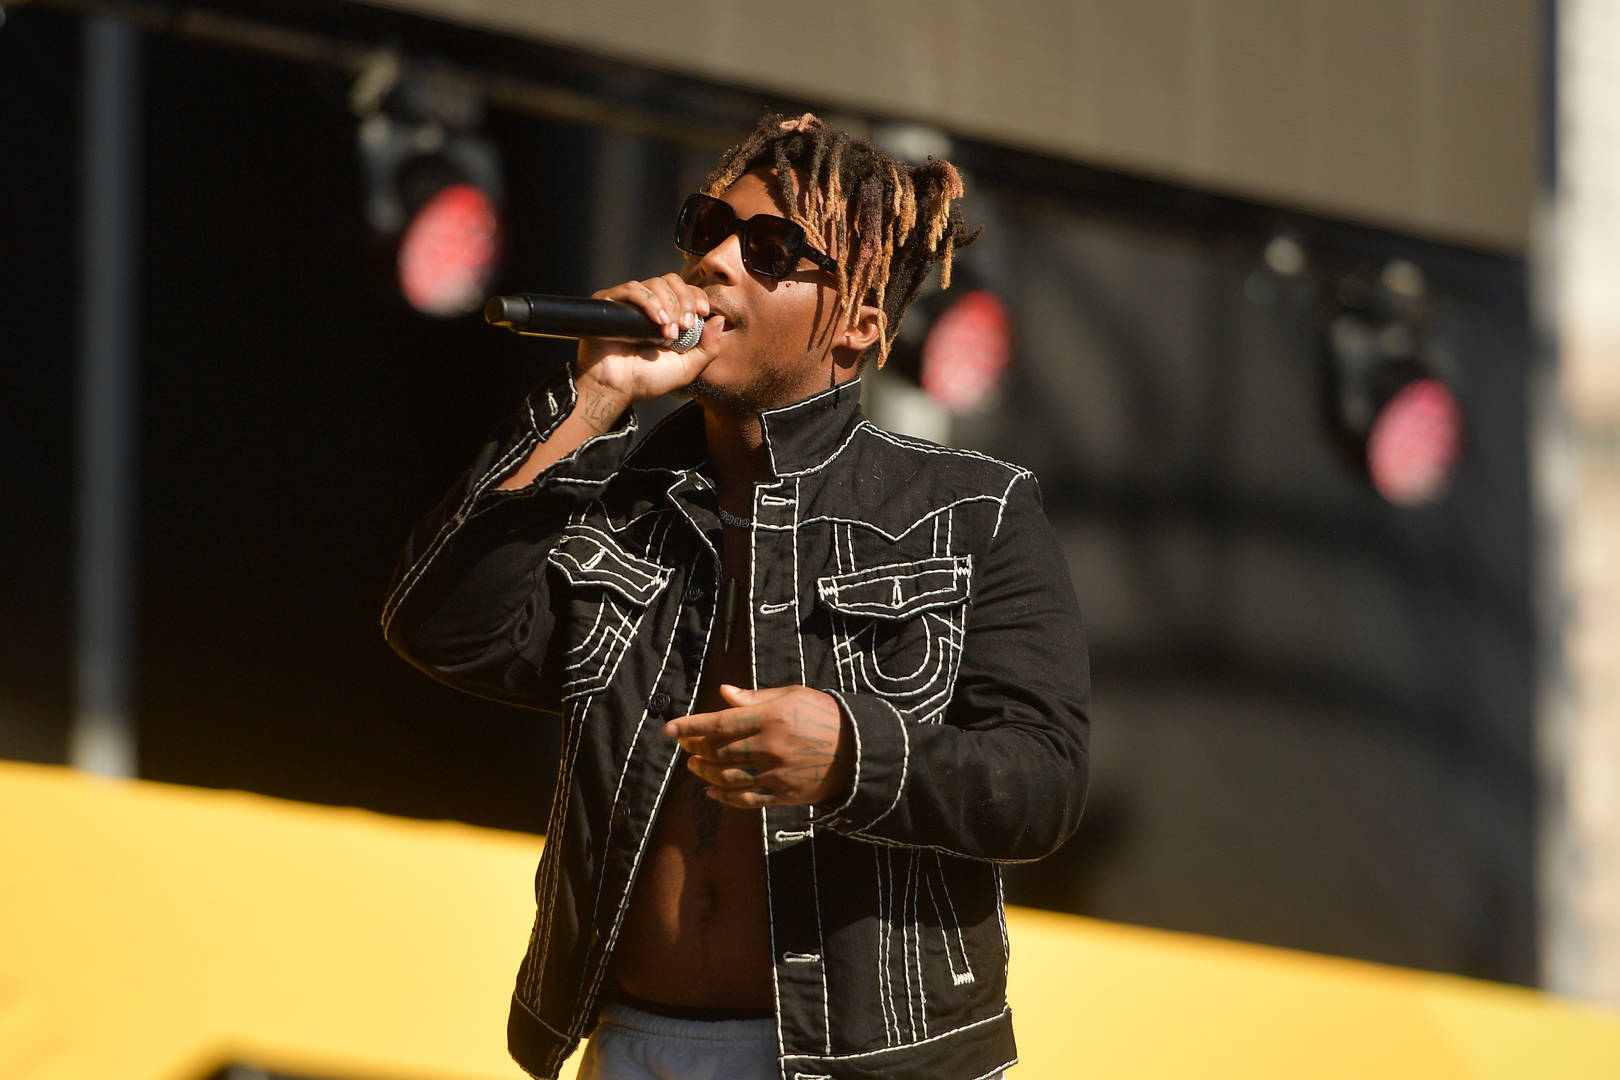 Juice WRLD dominates music streams after untimely death